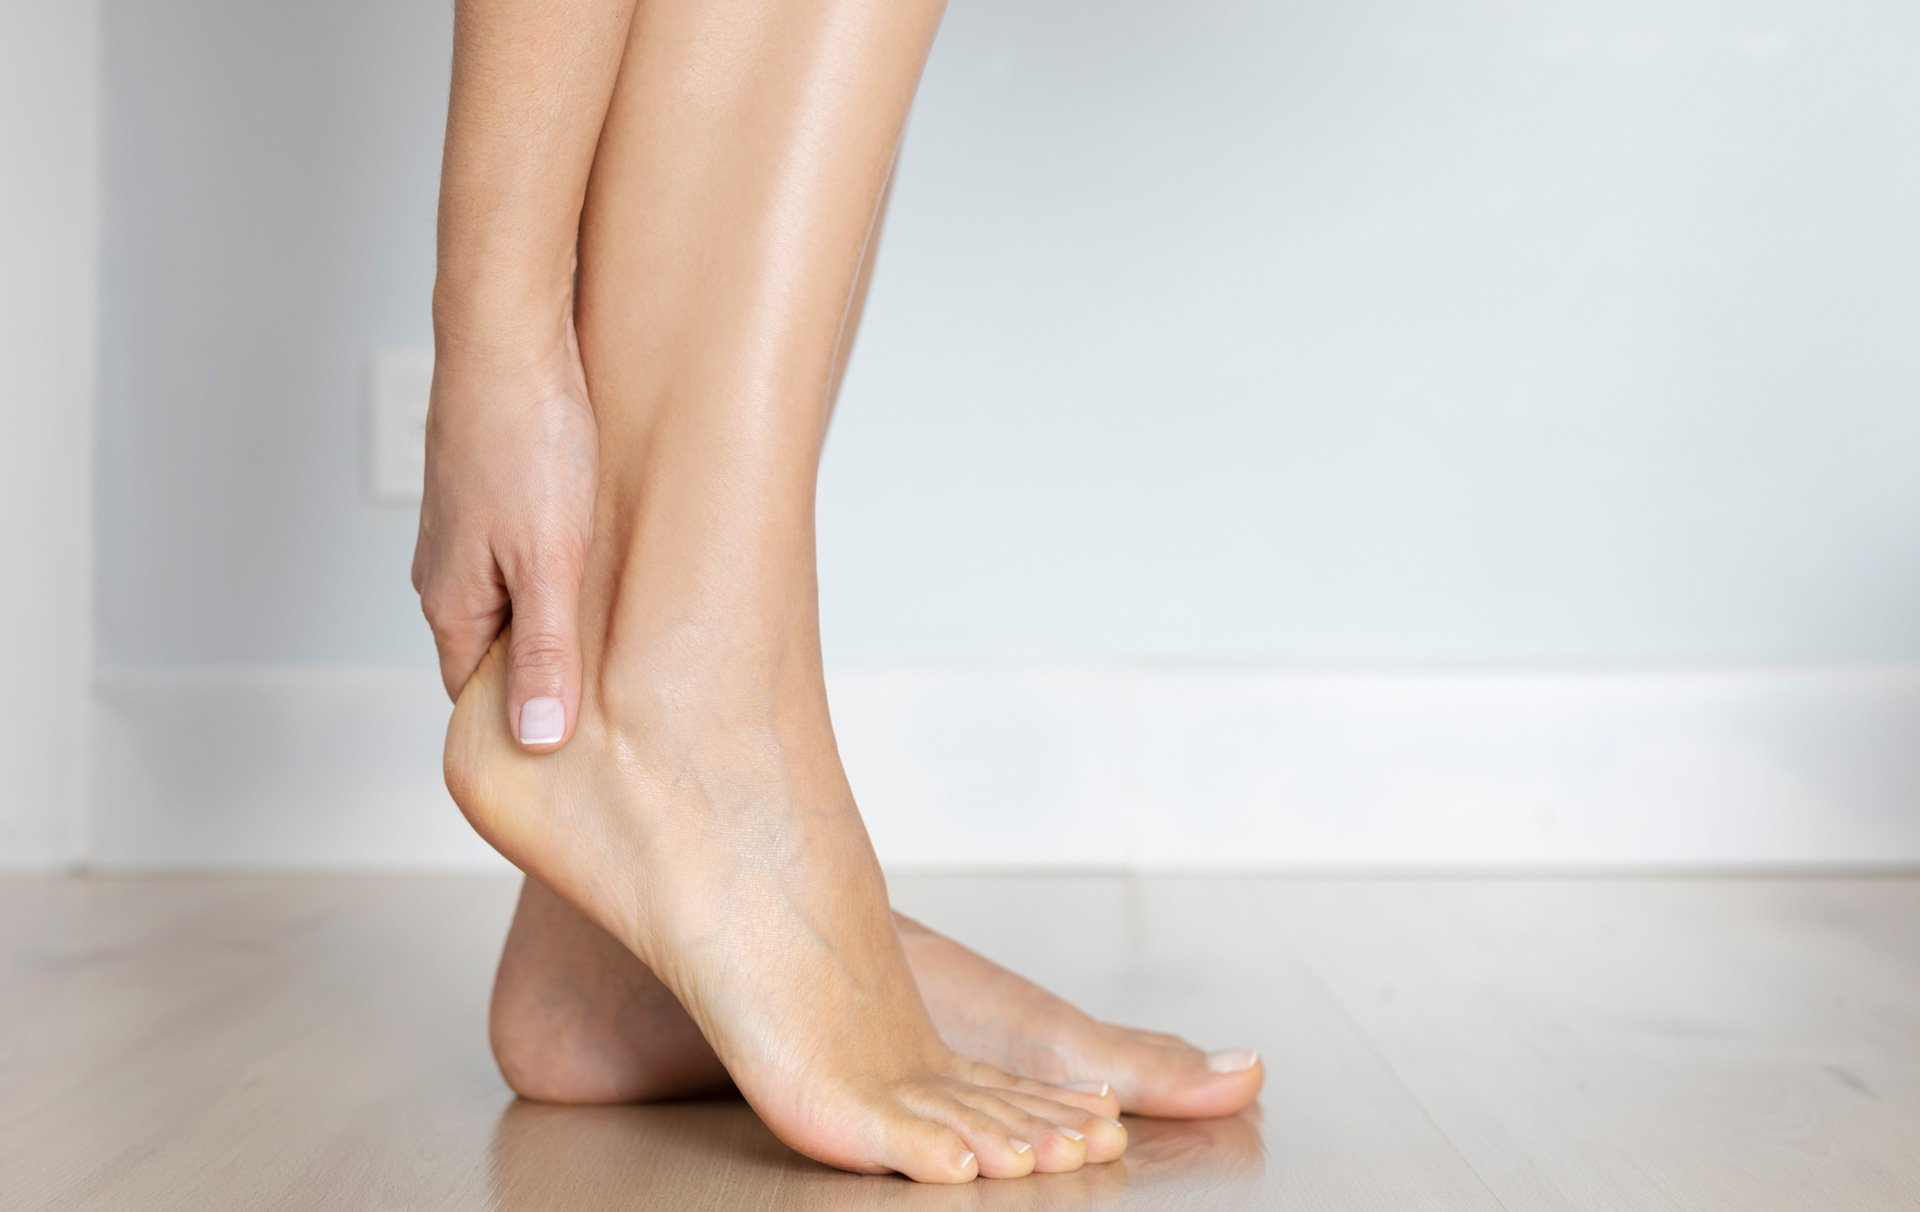 8 remedies for cracked heels and what causes them